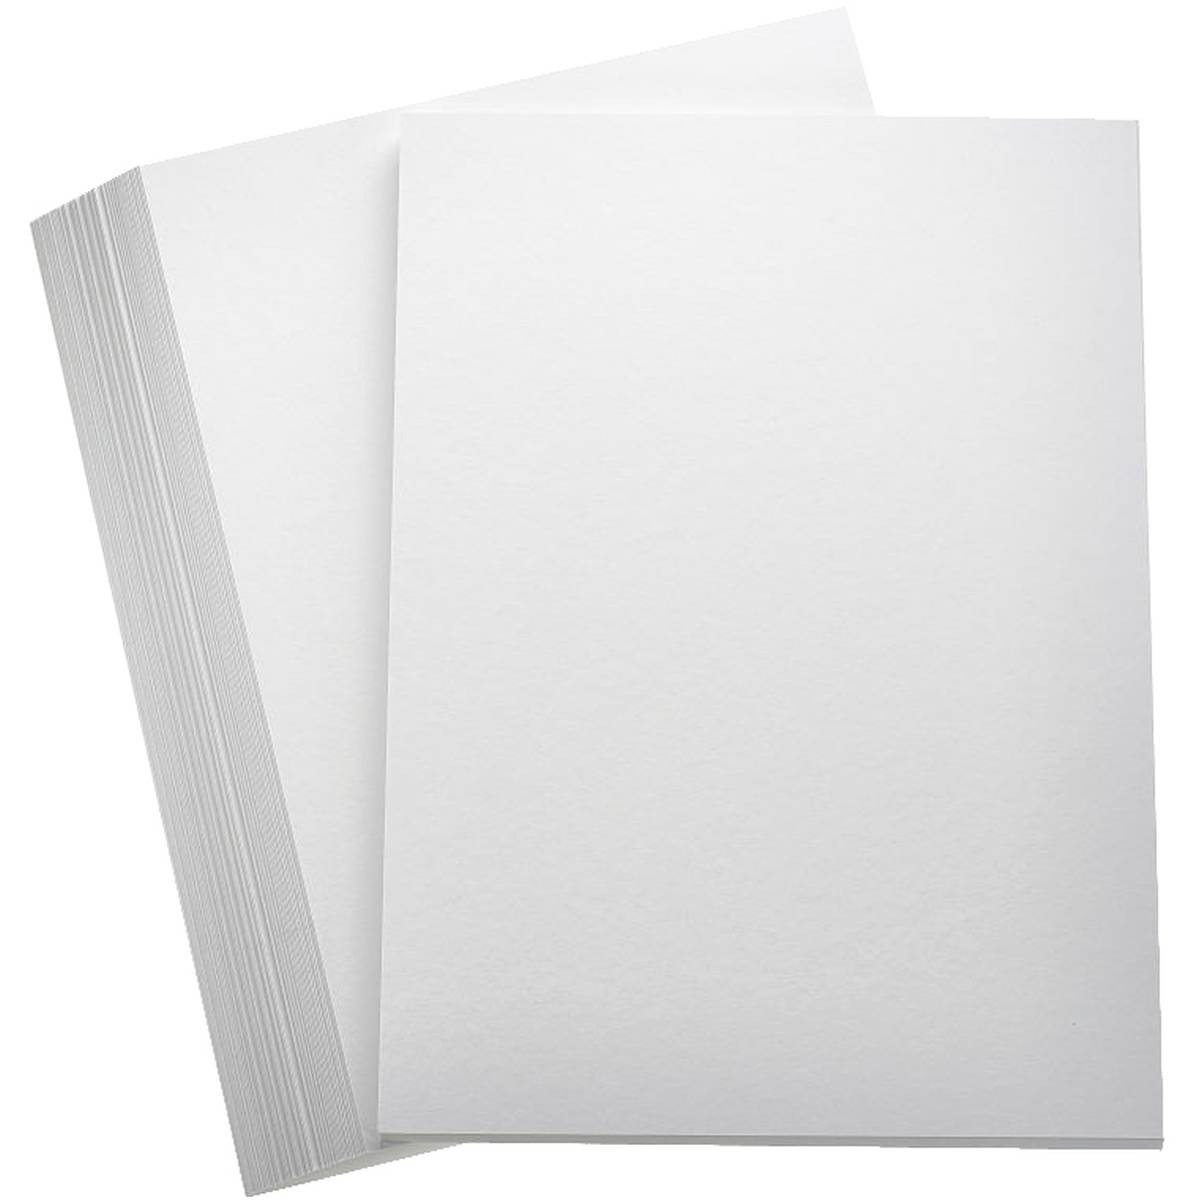 High Volume A4 Paper FSC Pk500 (2500 sheets)